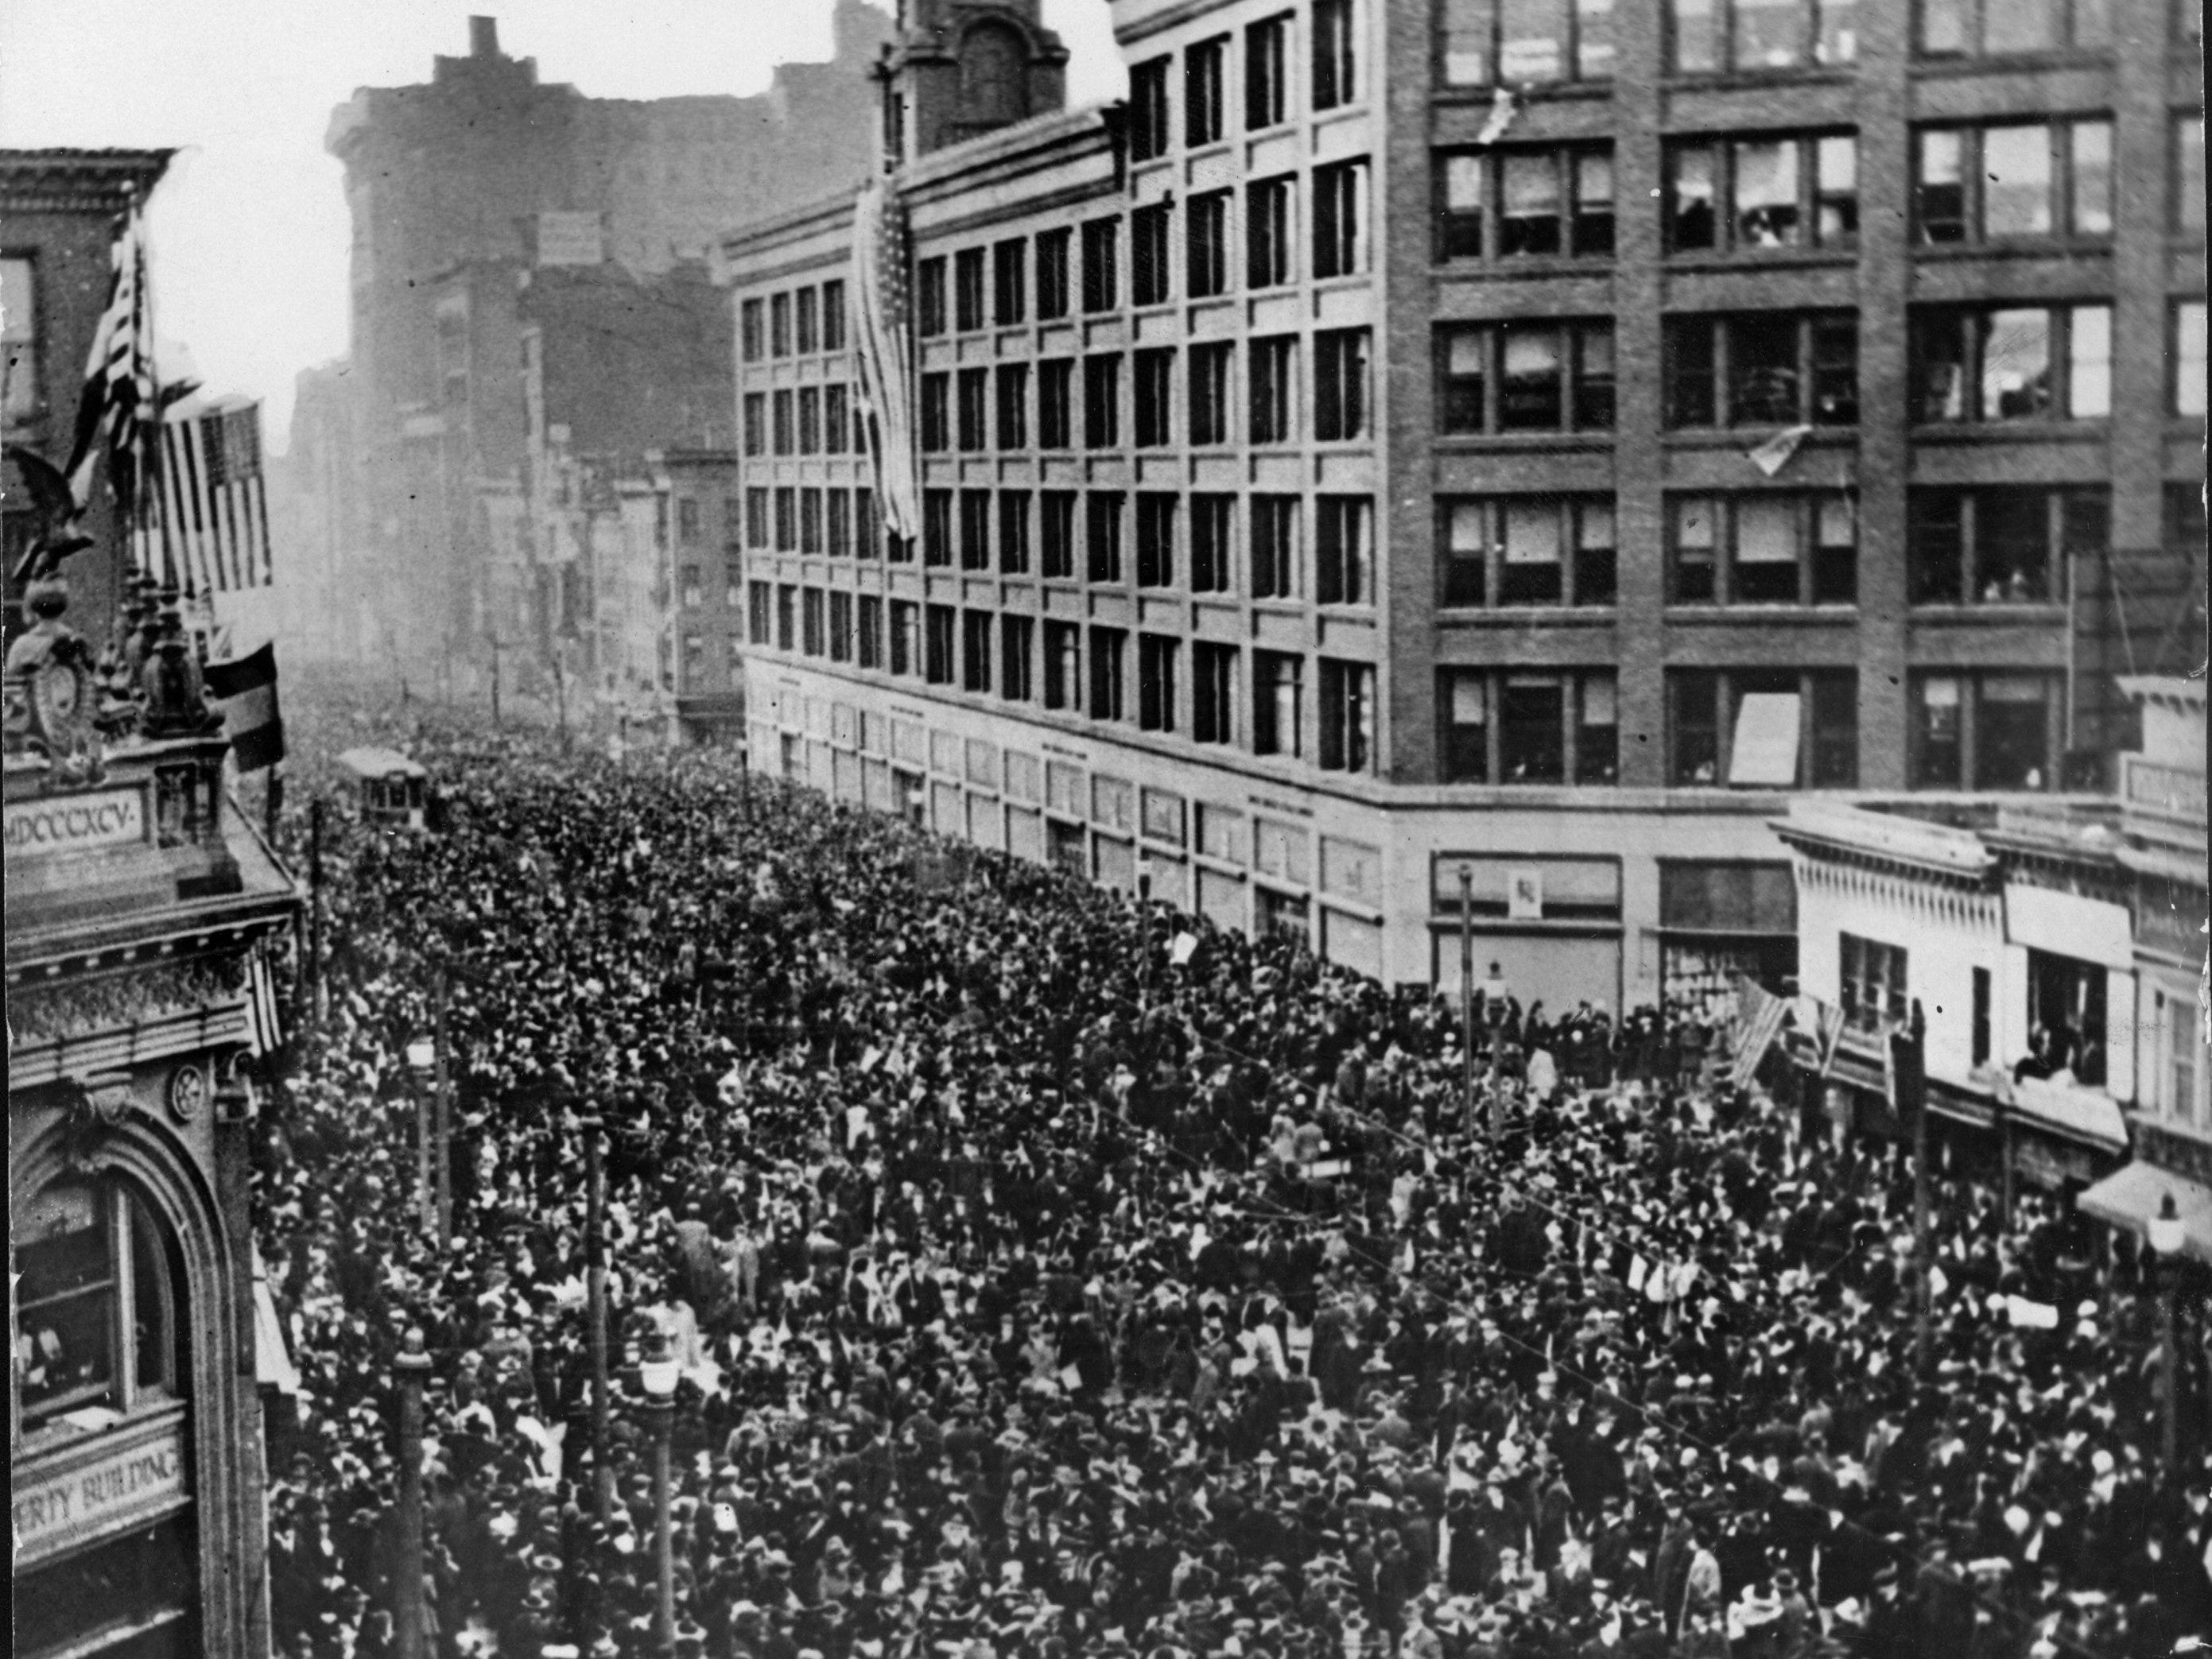 Crowds in Rochester celebrate the end of World War I on Armistice Day, Nov. 11, 1918. The Sibley Building is in the background.